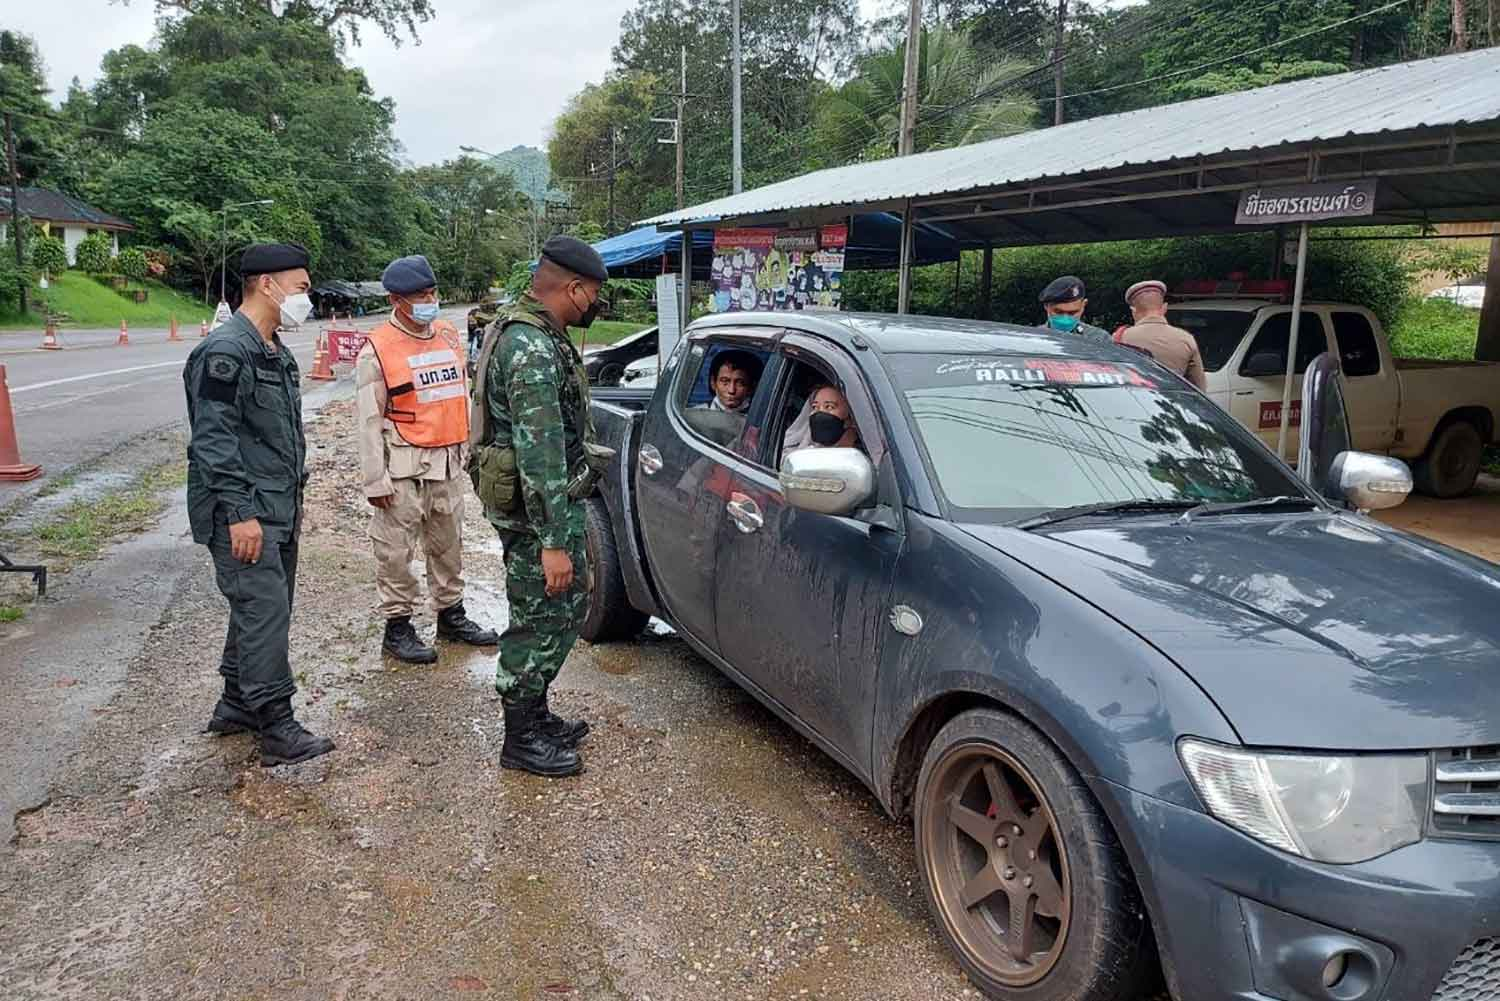 Soldiers search a pick-up truck at a checkpoint in tambon Pang Phle in Kanchanaburi's Sangkhla Buri district on Wednesday morning. Two Thai women were arrested for transporting Myanmar migrants to Three Pagodas border checkpoint, violating the ban against moving migrants to contain the Covid-19 pandemic. (Photo: Piyarat Chongcharoen)